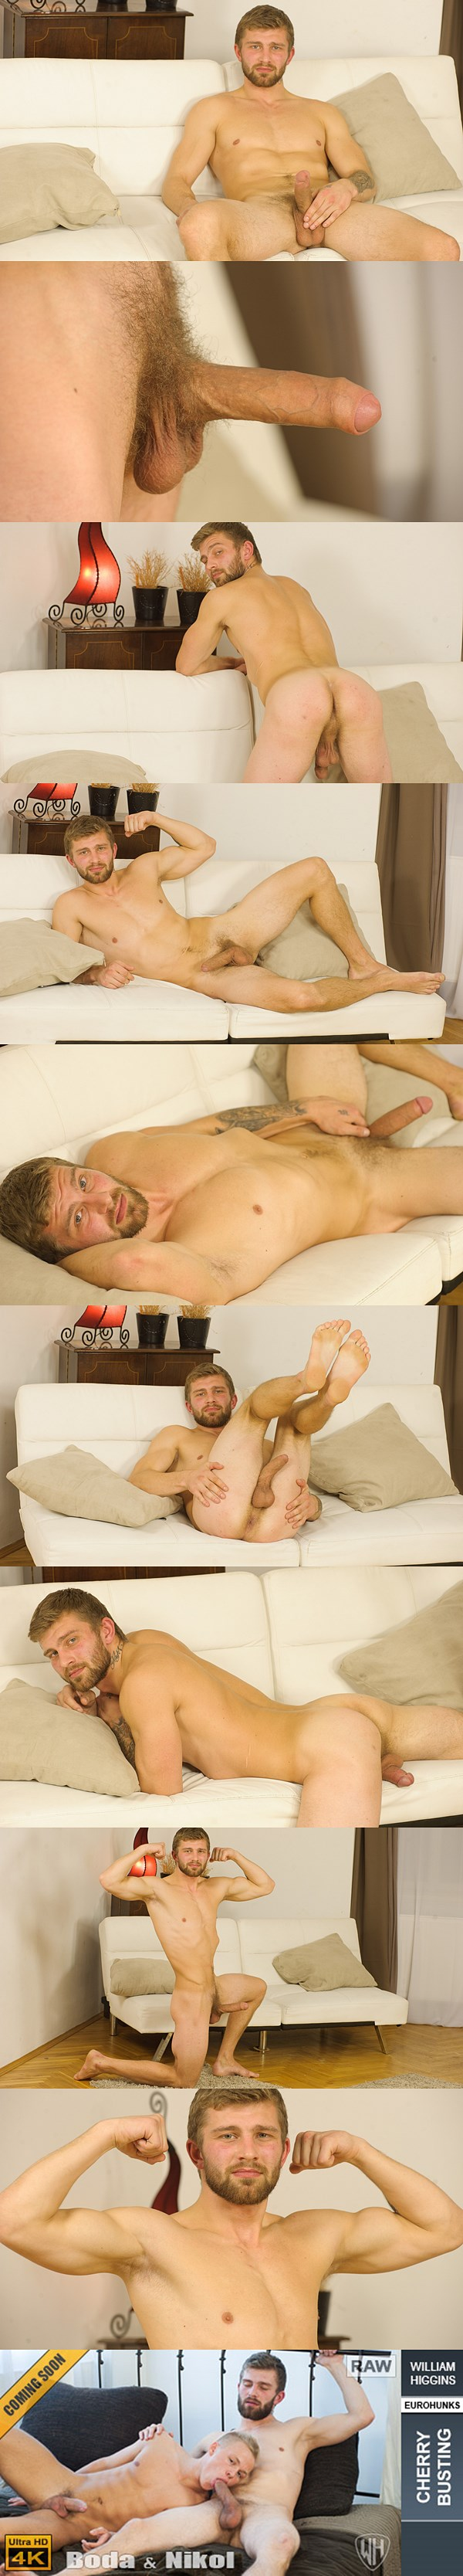 Rugged handsome straight jock Nikol Monak will get fucked for the first time at Williamhiggins